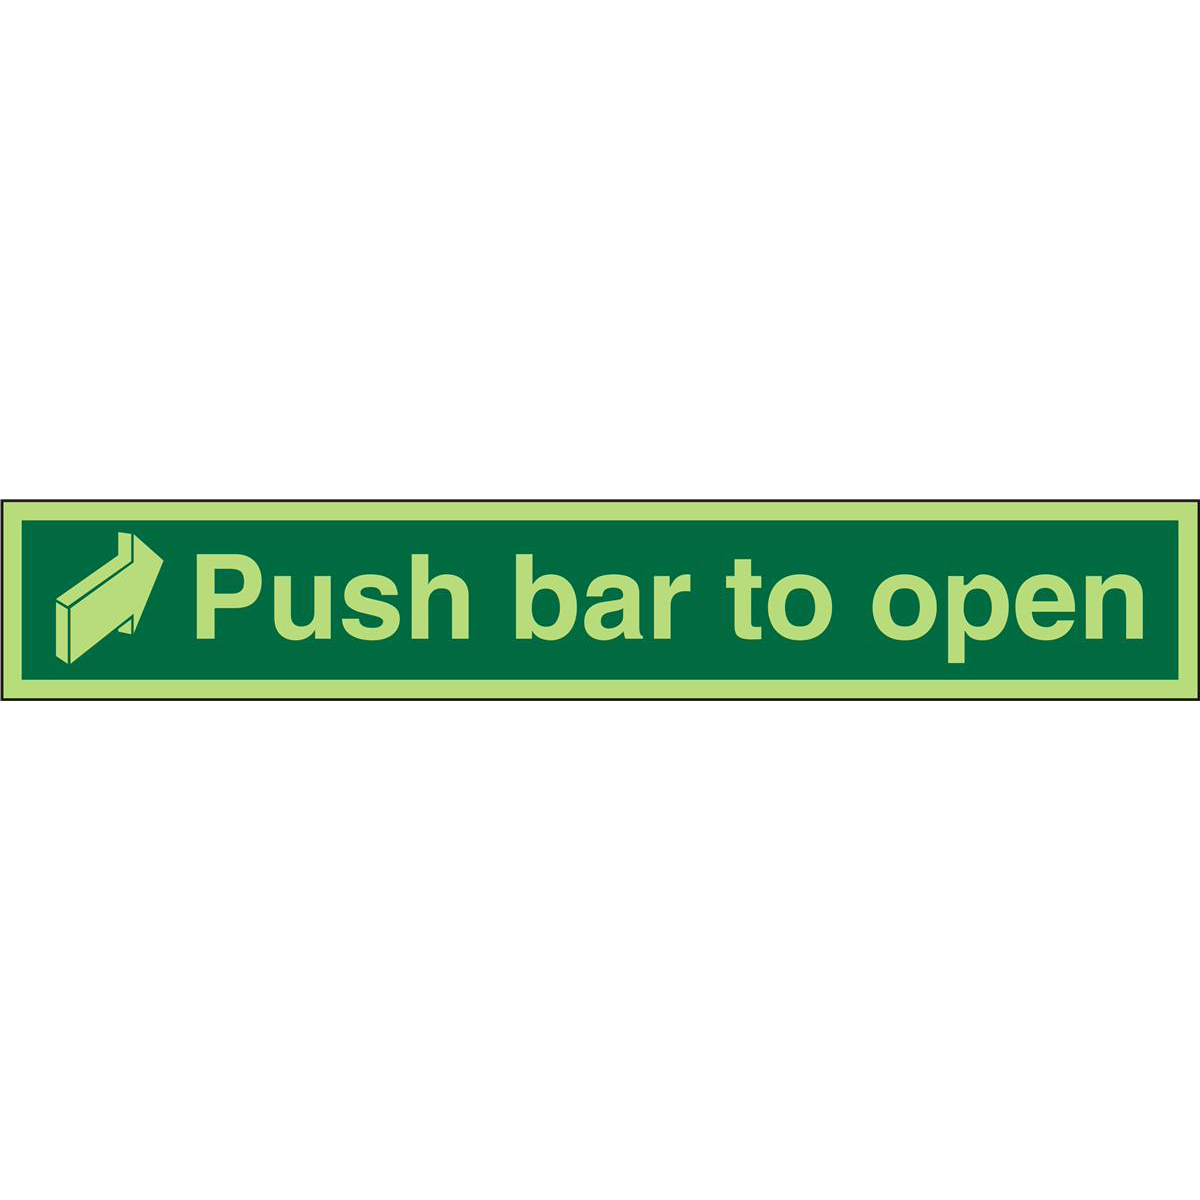 Photolum Safe Sign 600x100 1mm Push Bar To Open Arrow right Ref PSP056SRP600x100 Up to 10 Day Leadtime